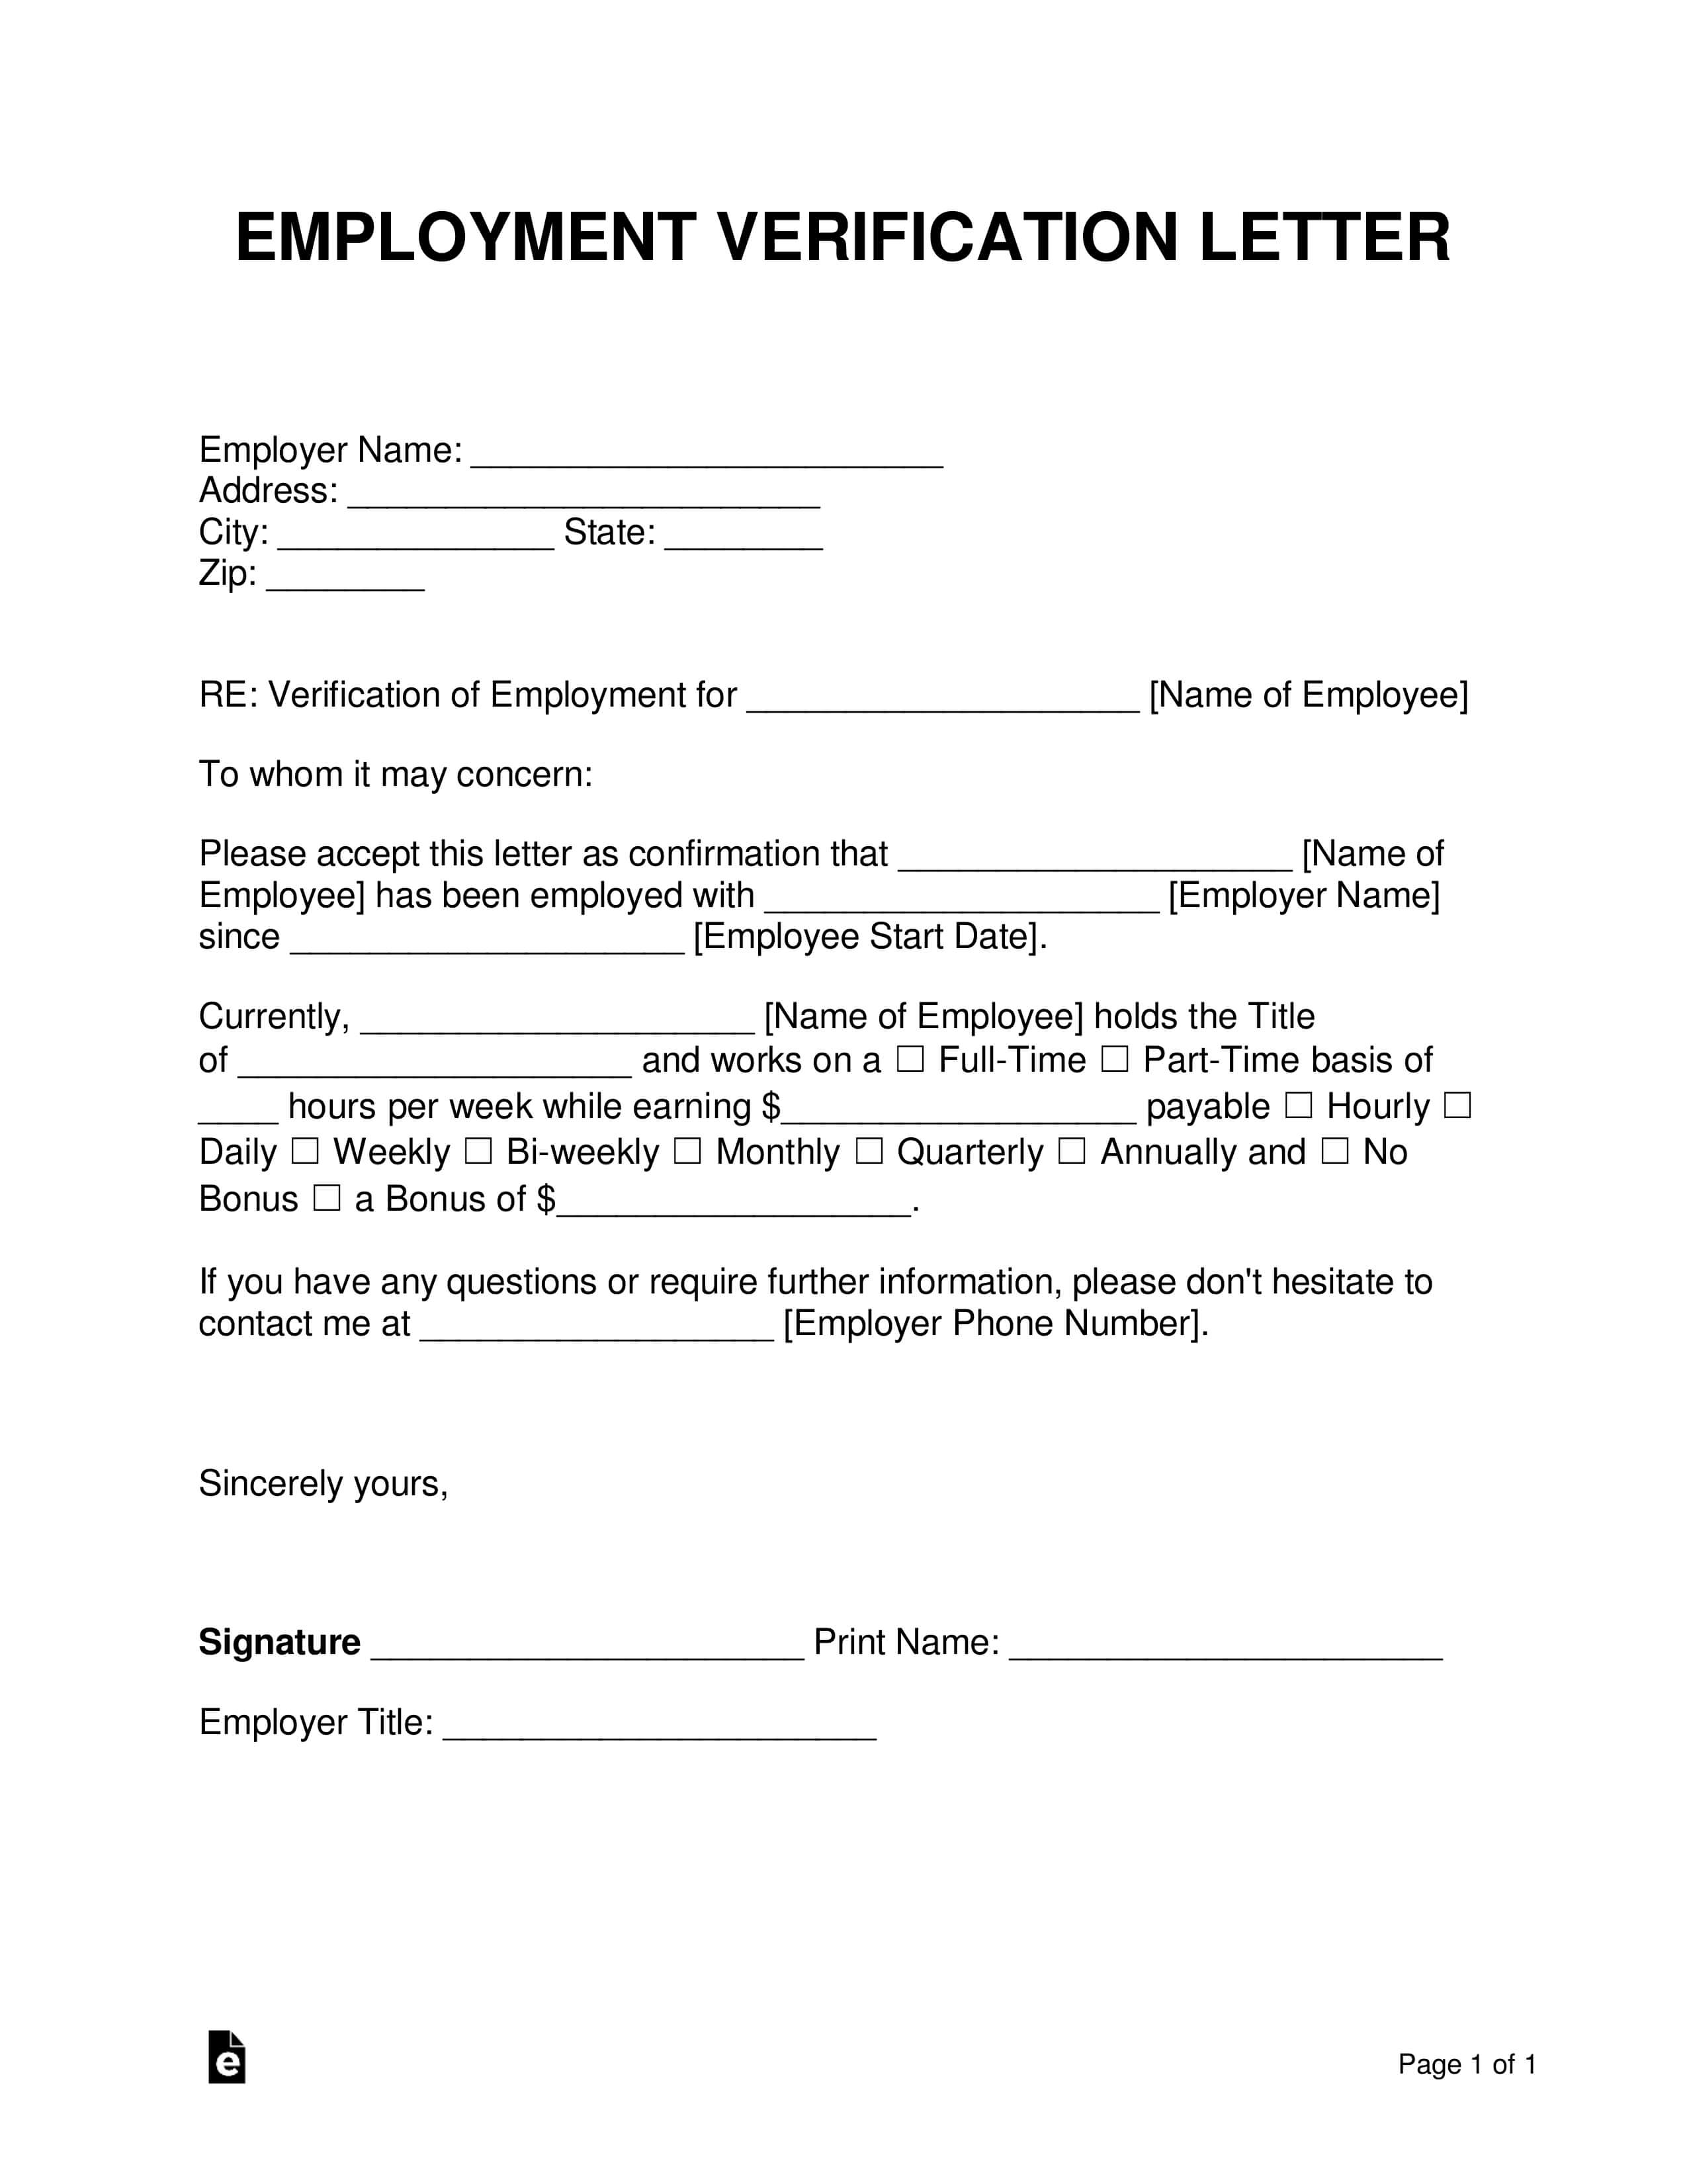 Free Employment (Income) Verification Letter - Pdf | Word Throughout Employment Verification Letter Template Word